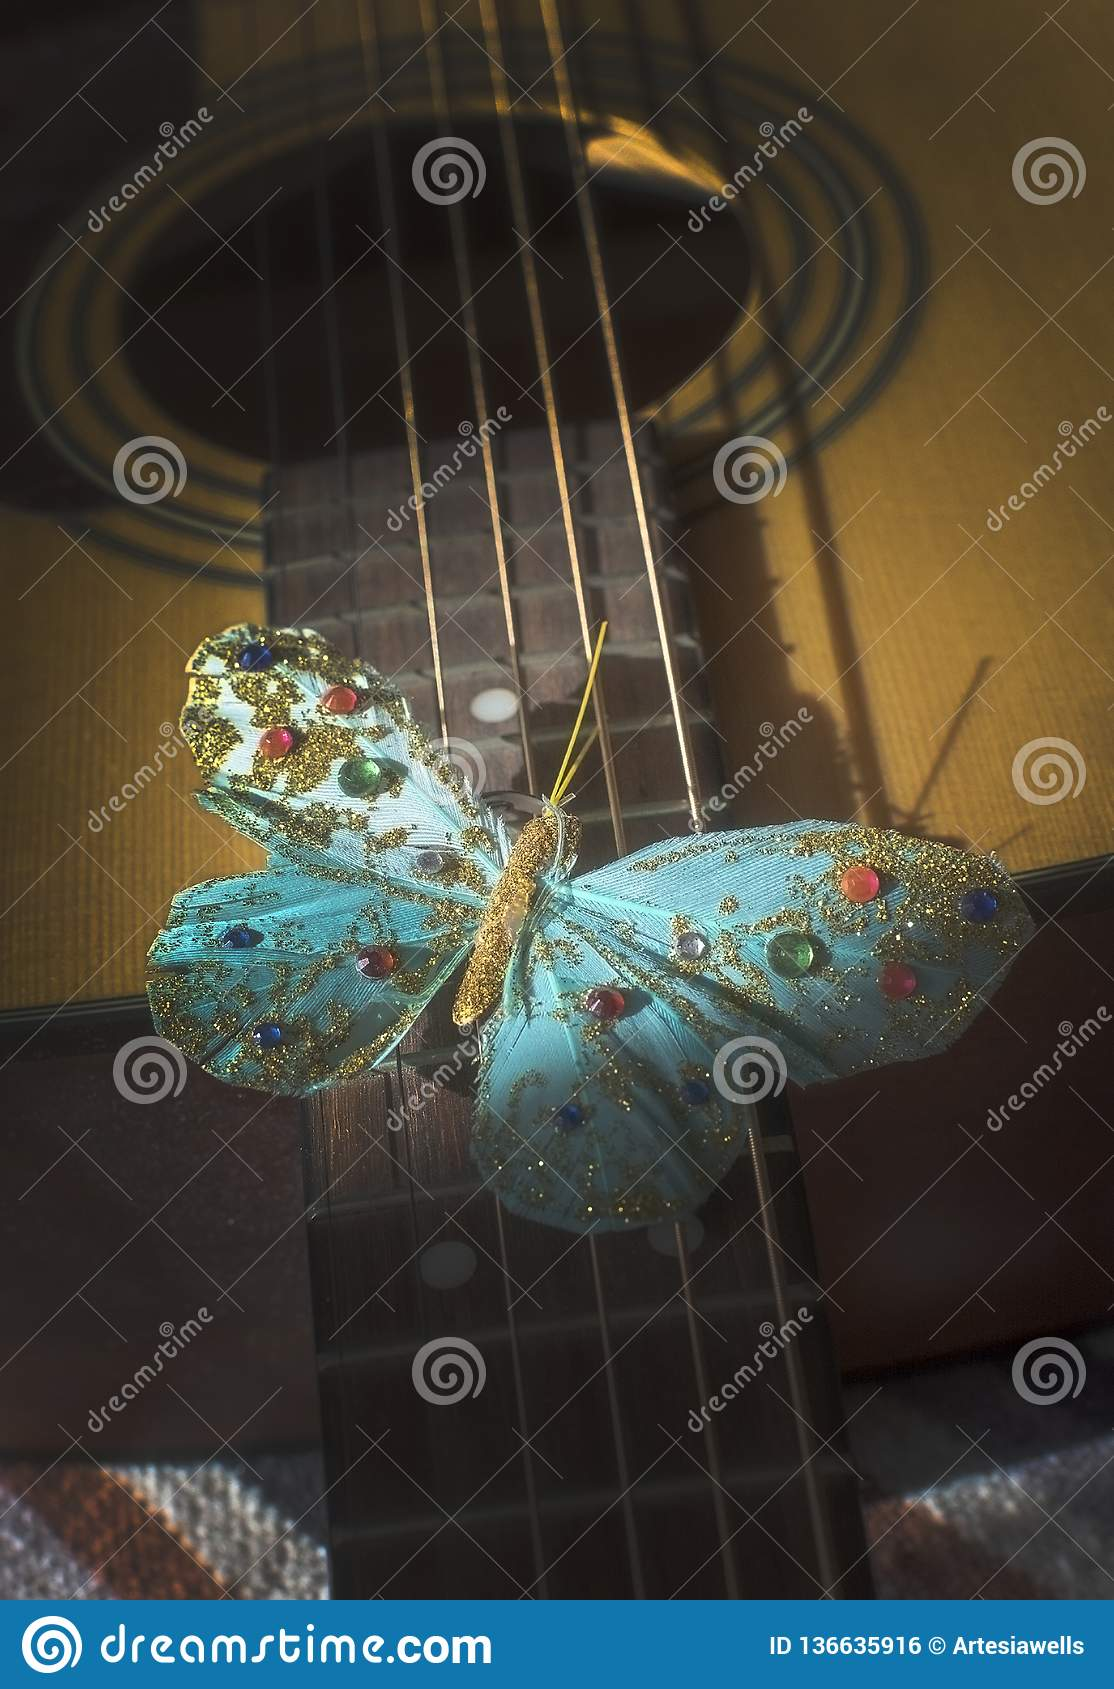 Turquoise butterfly on strings of acoustic guitar